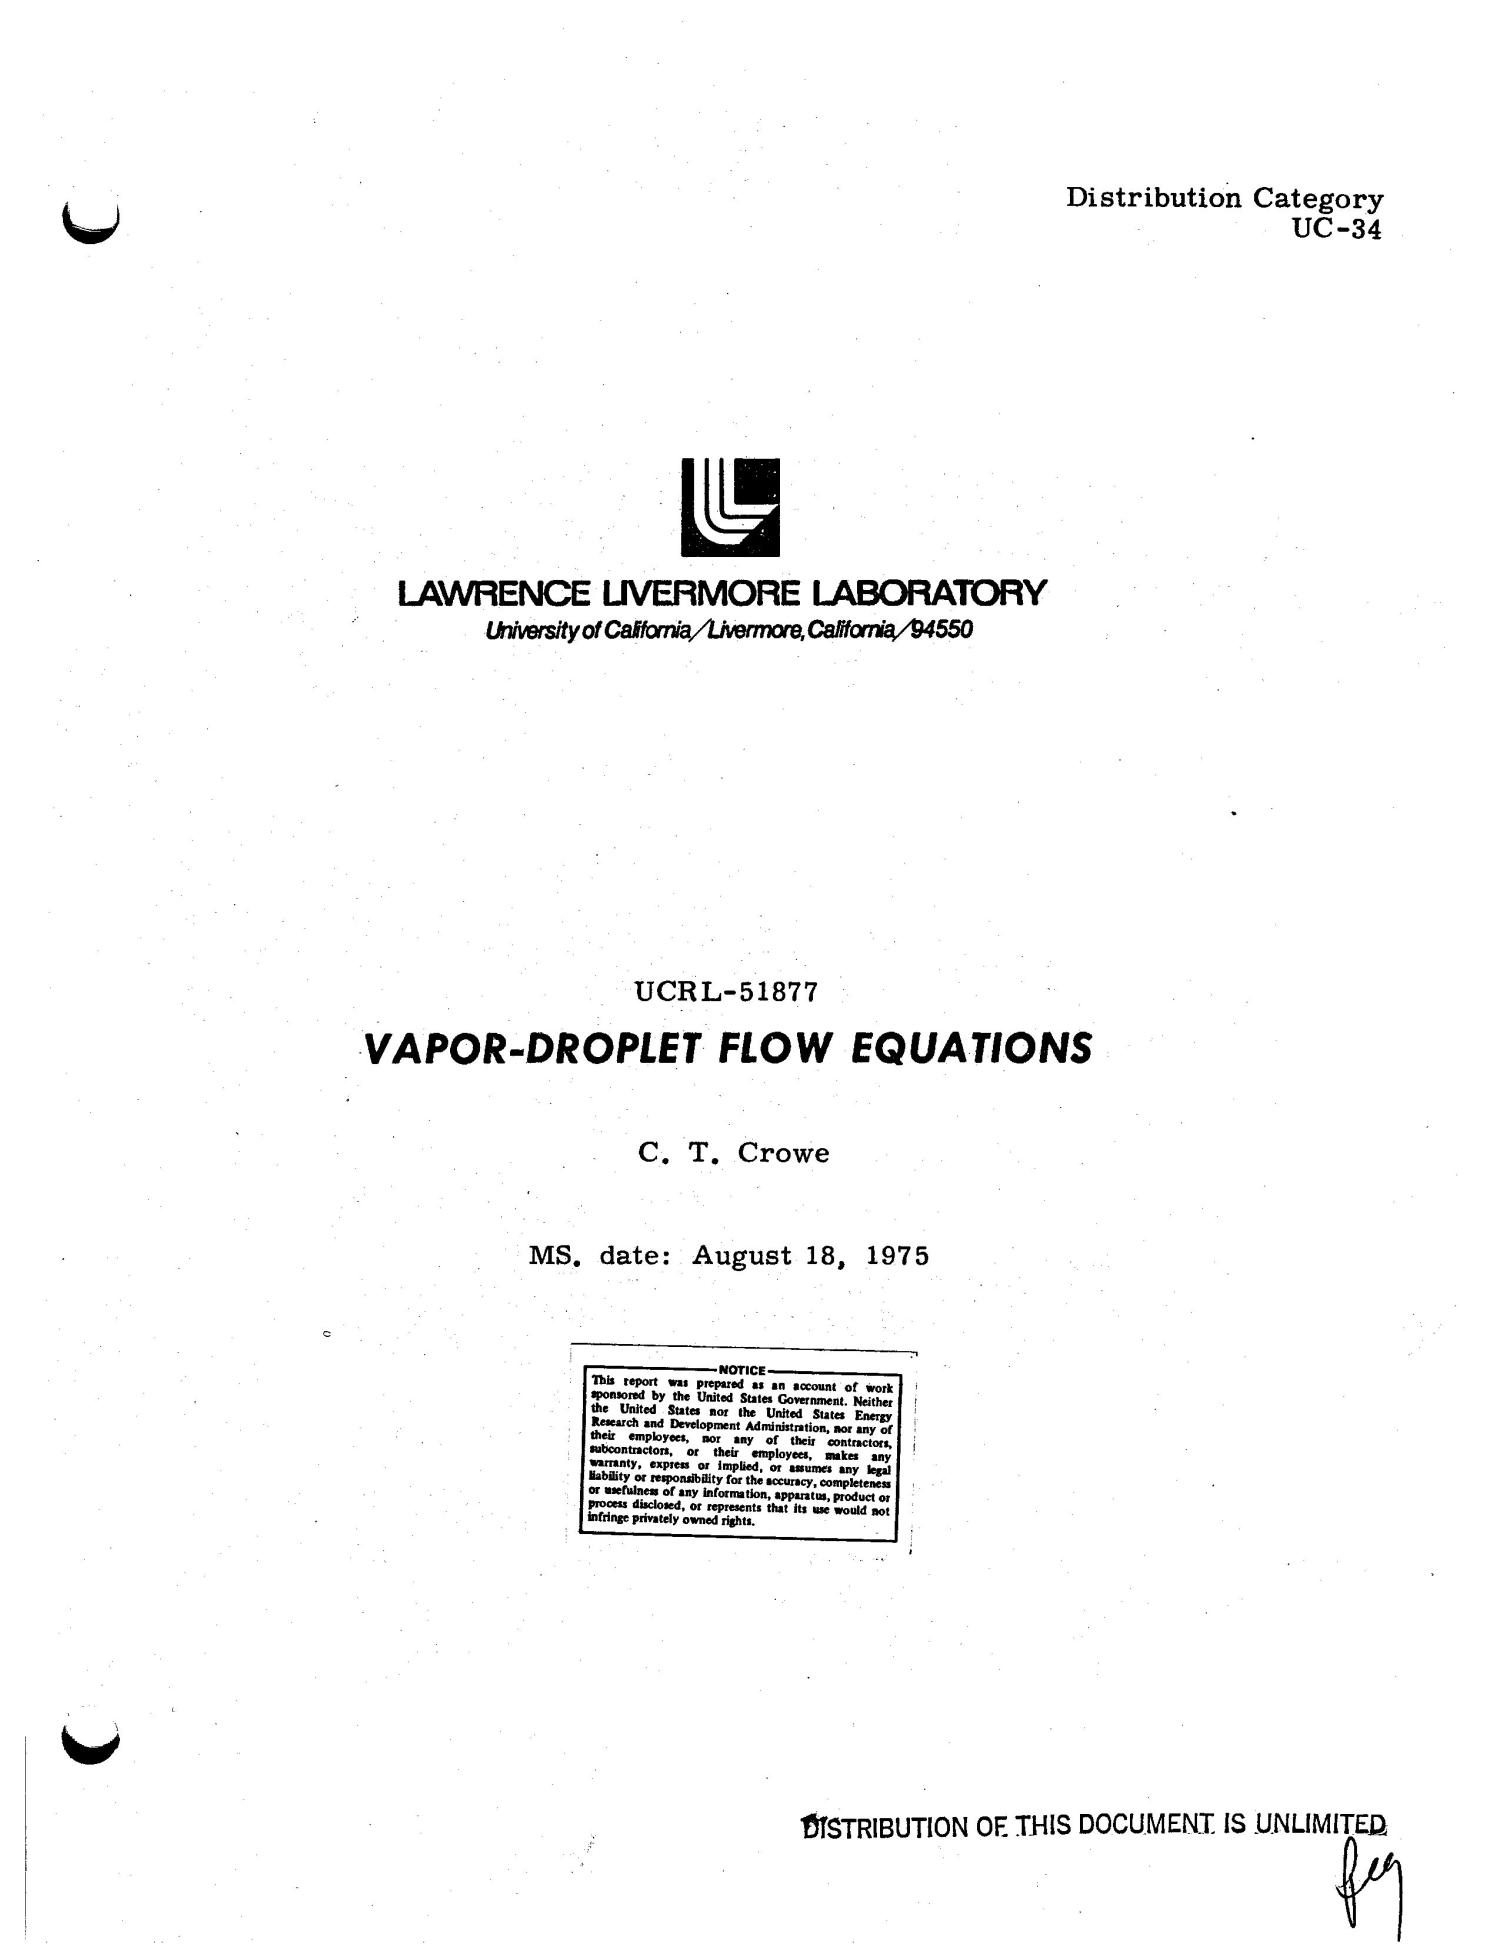 Vapor-droplet flow equations                                                                                                      [Sequence #]: 4 of 35